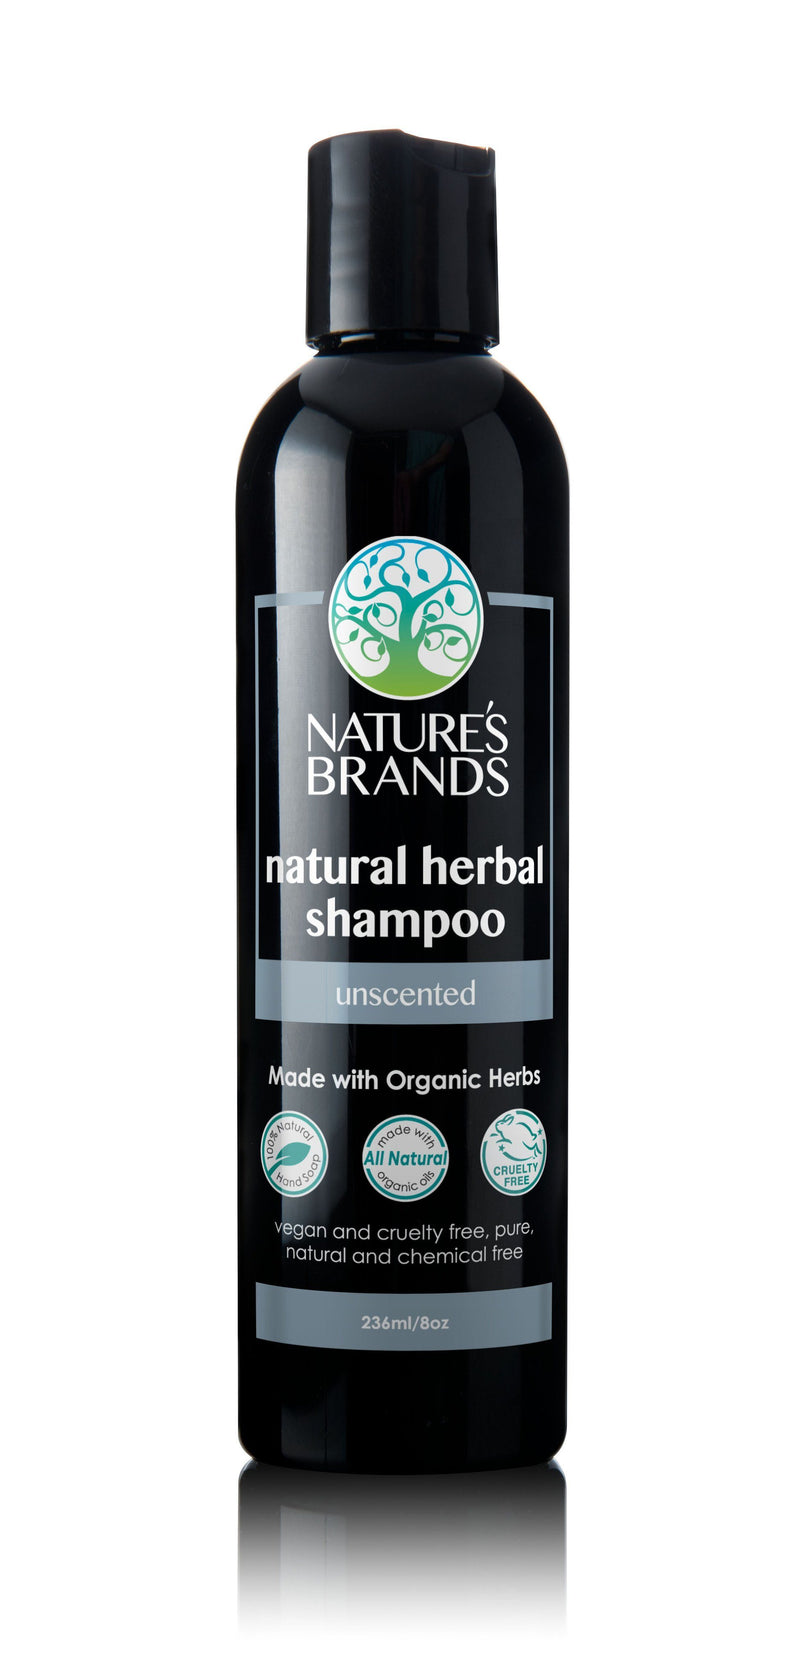 Herbal Choice Mari Natural Shampoo, Unscented; Made with Organic - Herbal Choice Mari Natural Shampoo, Unscented; Made with Organic - 8floz